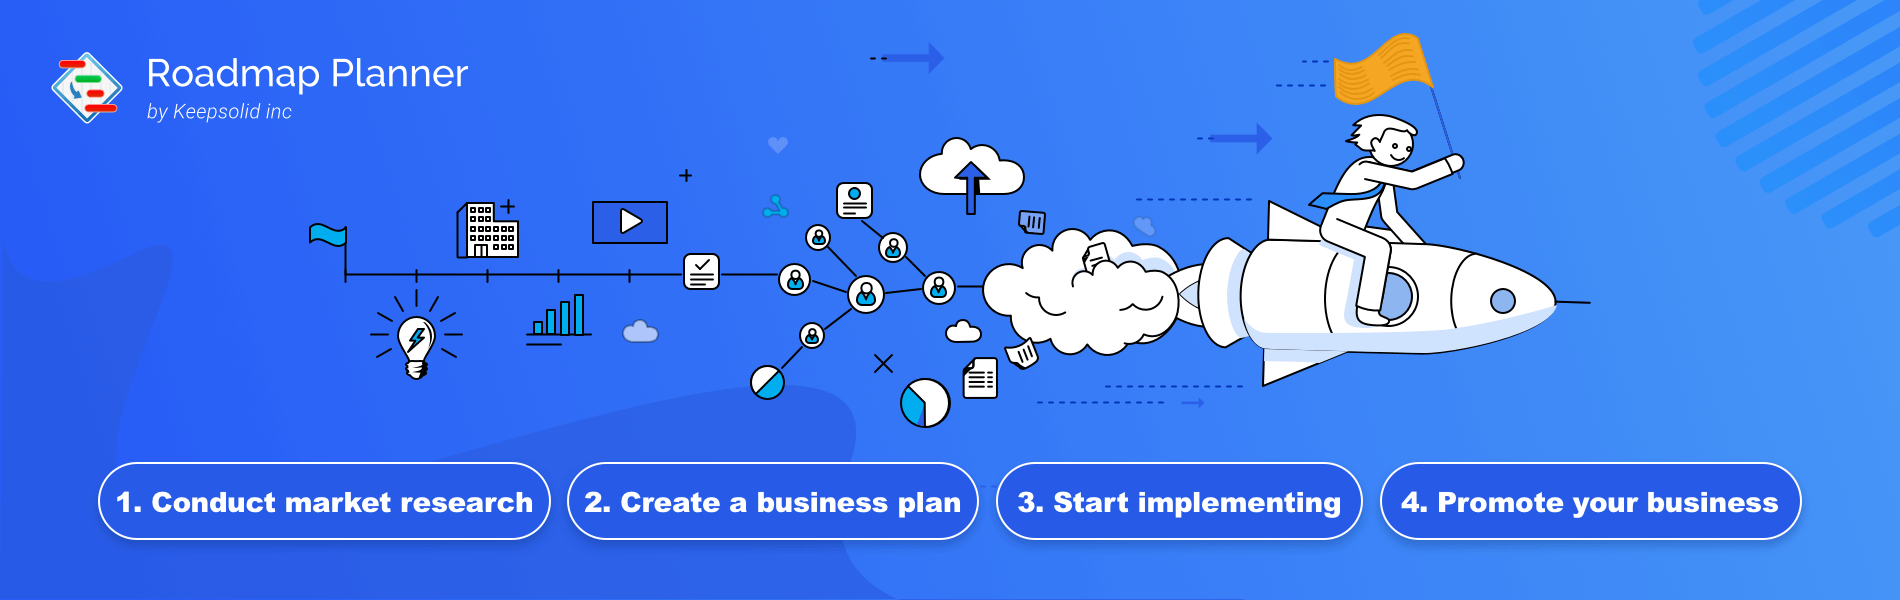 How to launch a successful business with Roadmap Planner.